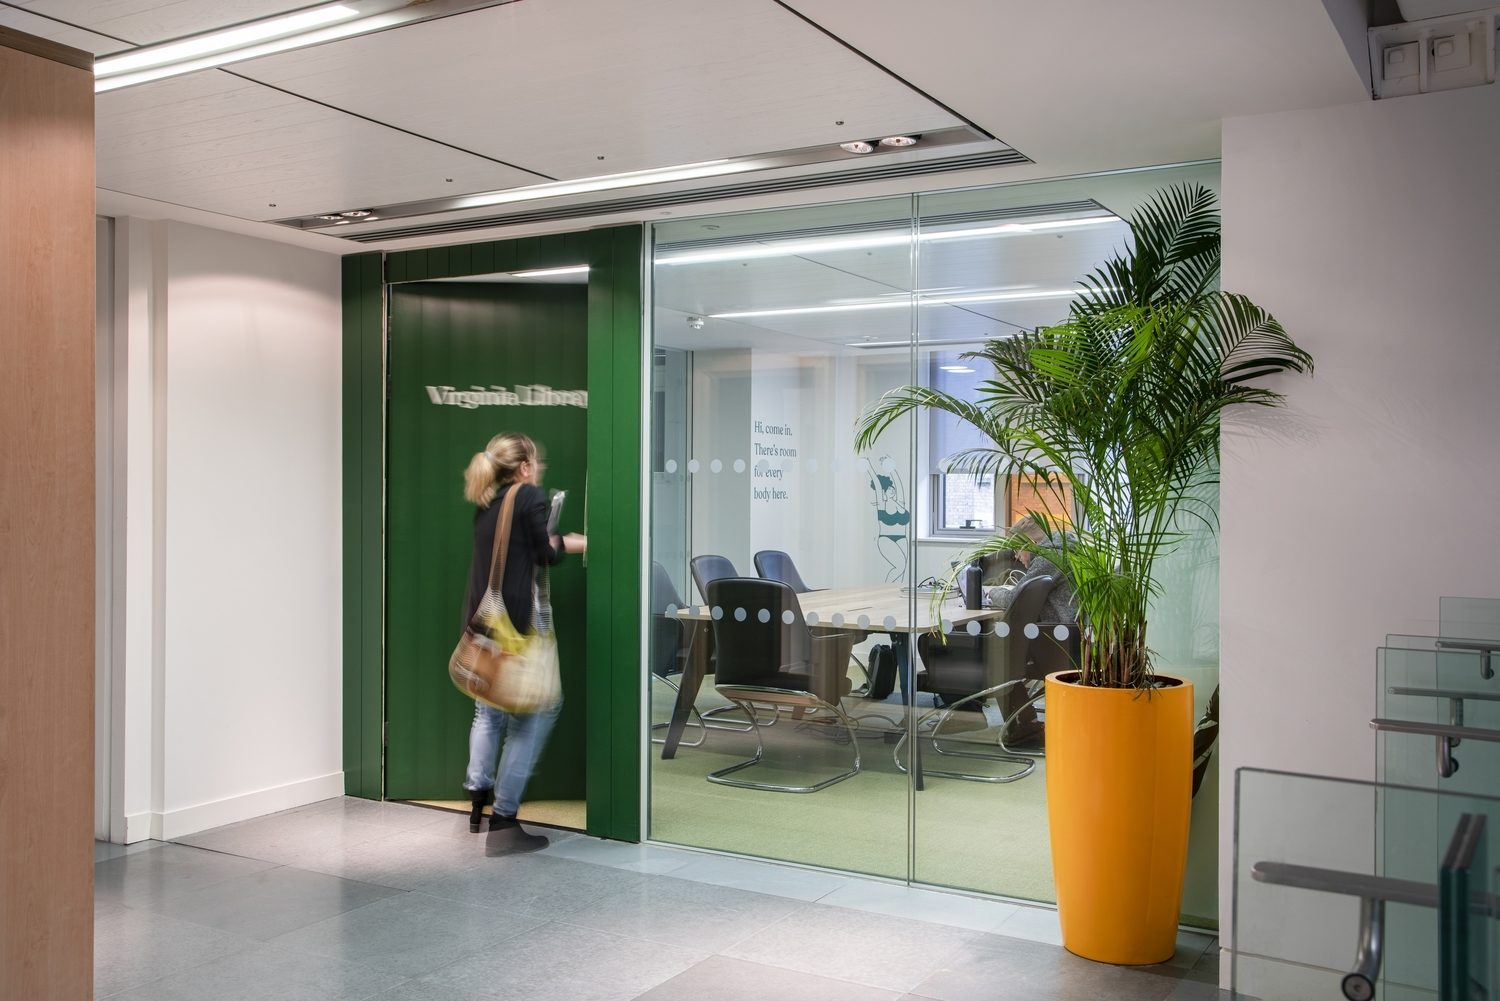 Body Shop offices designed for agile